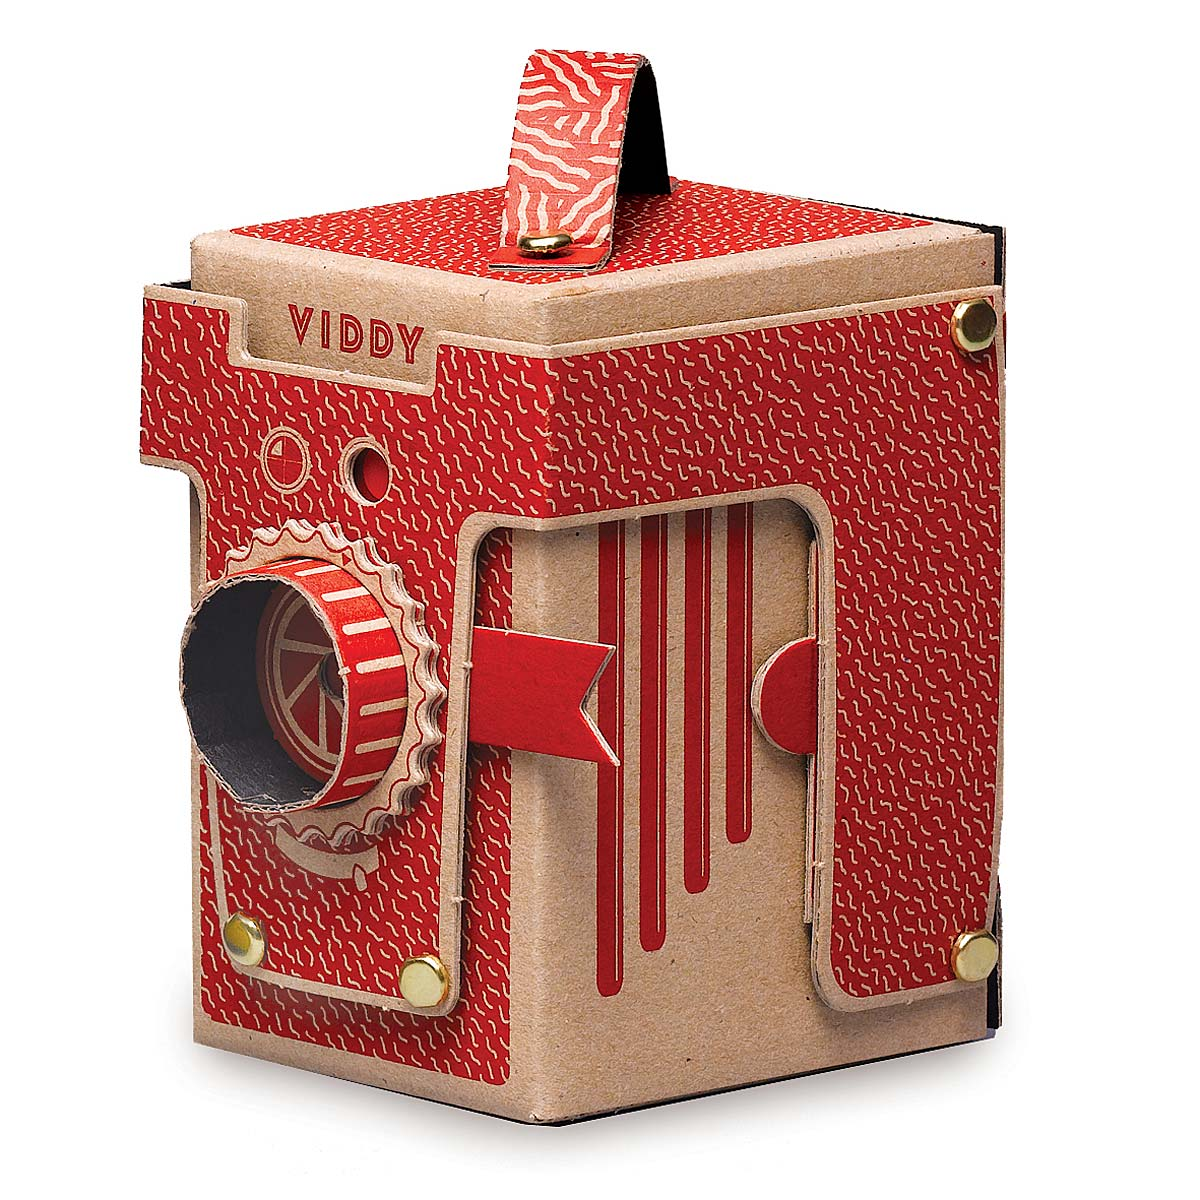 Build Your Own Pinhole Camera Kit | build your own pinhole camera ...